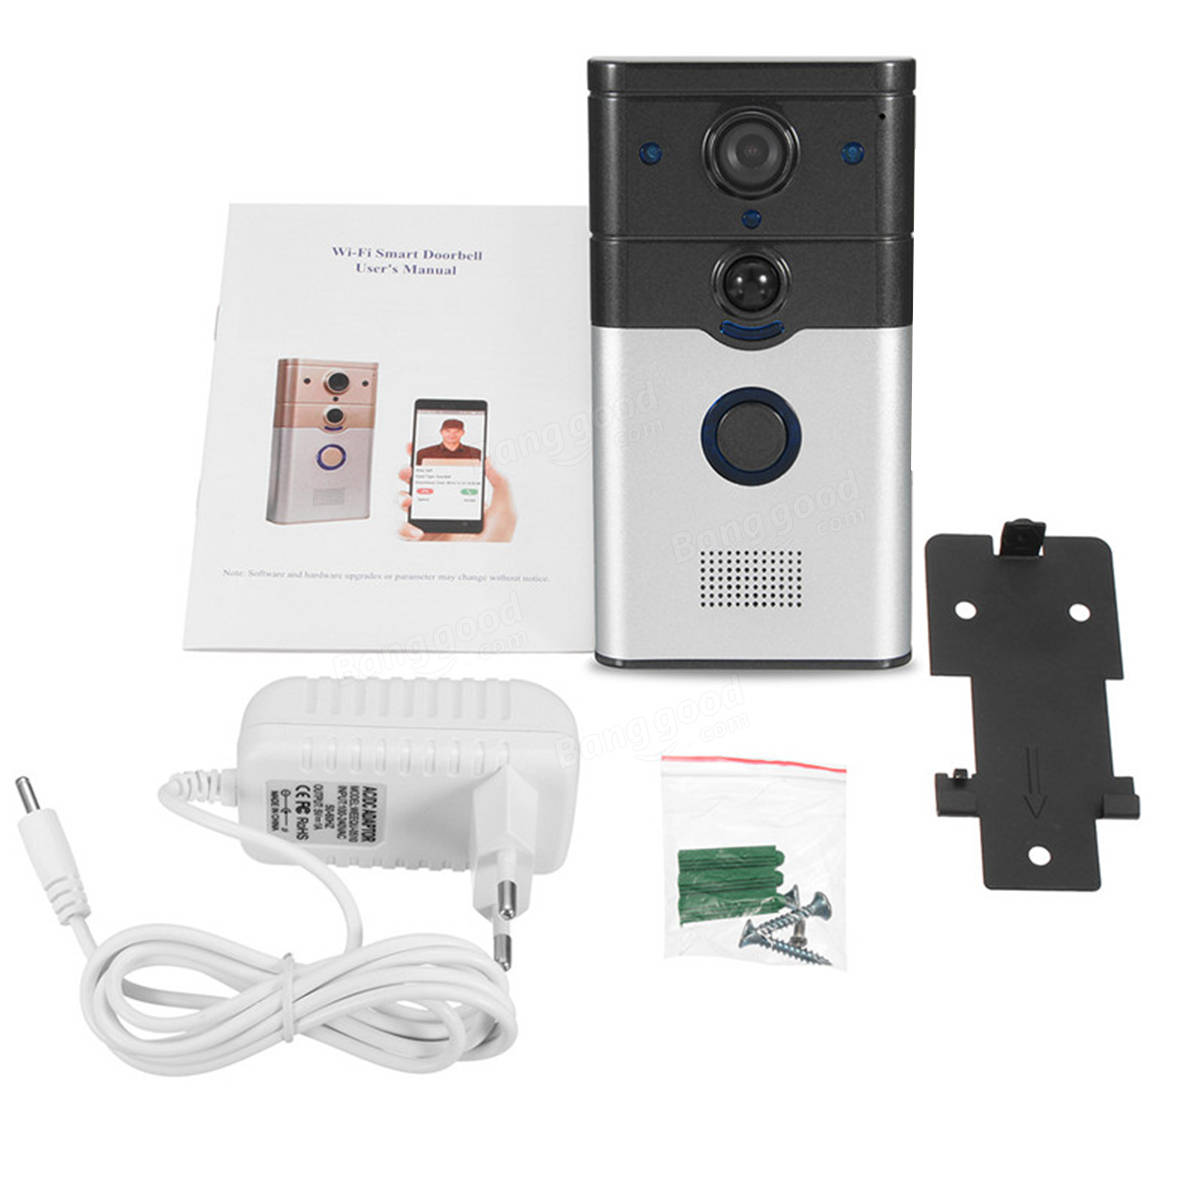 HD WIFI Wireless Smart Doorbell Camera Video Monitor Night Vision Two Way Talk